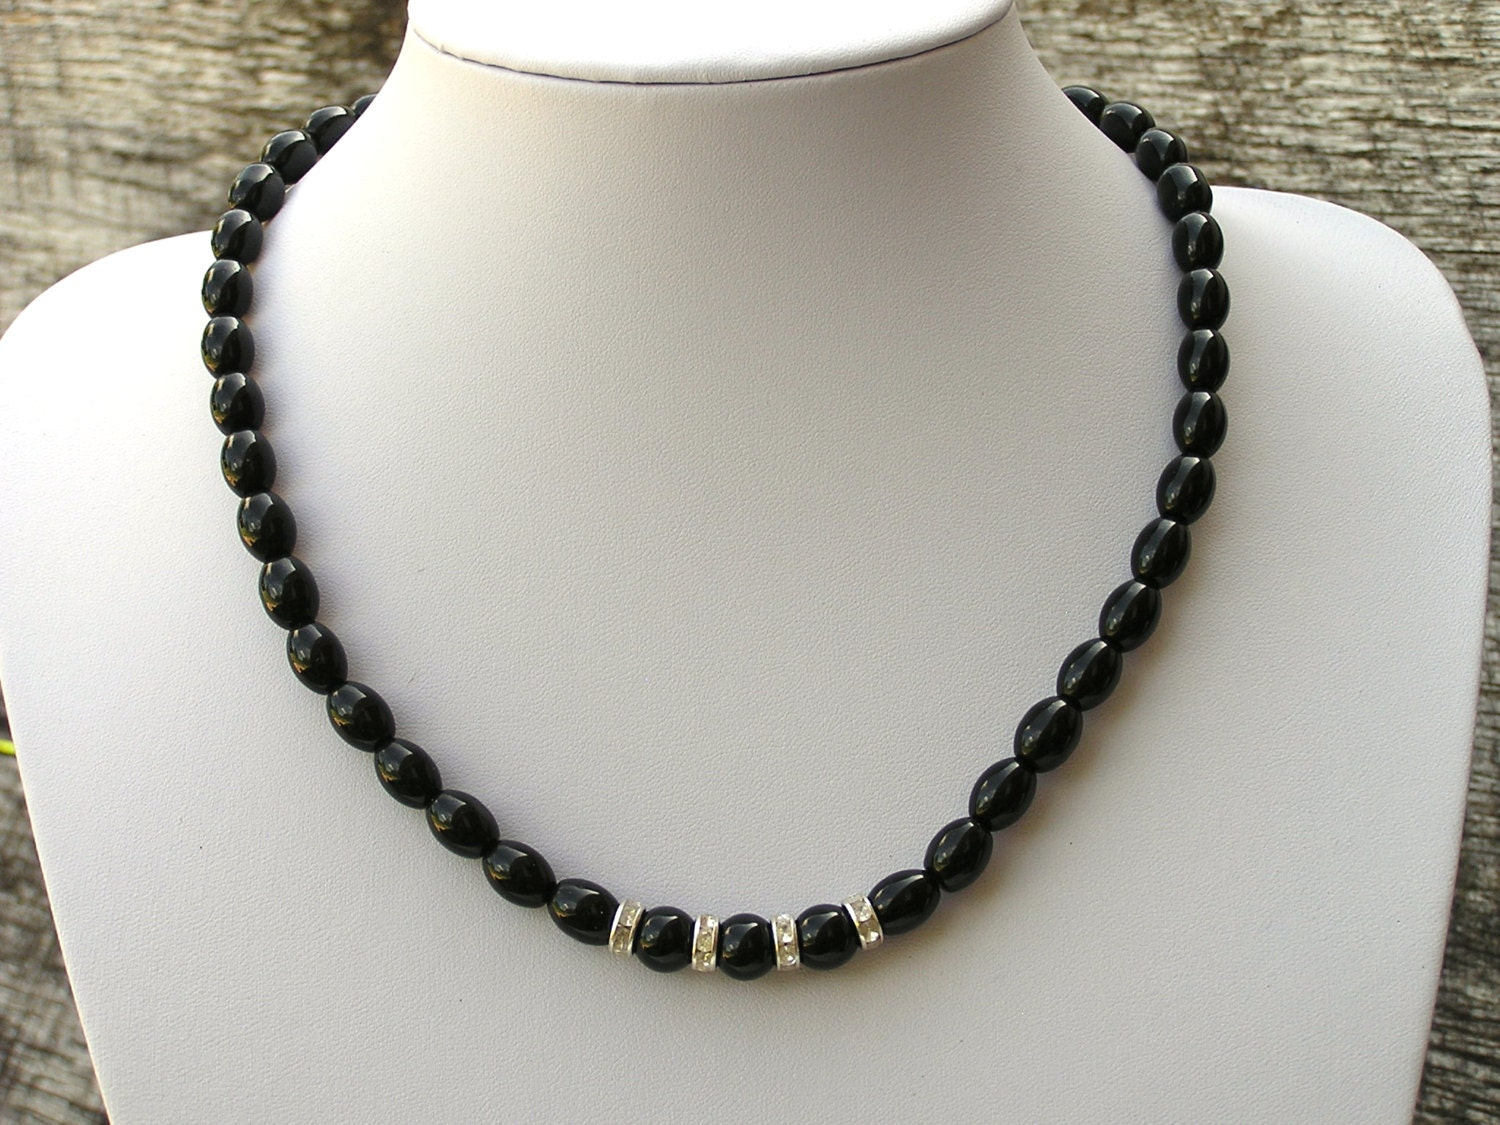 Bellezza Black Spinel Faceted Bead Station Necklace. Customer Pick Bellezza Black Spinel Faceted Bead Station Necklace Pricing $ or 3 payments of $ Rating. 12 (12) ♥.